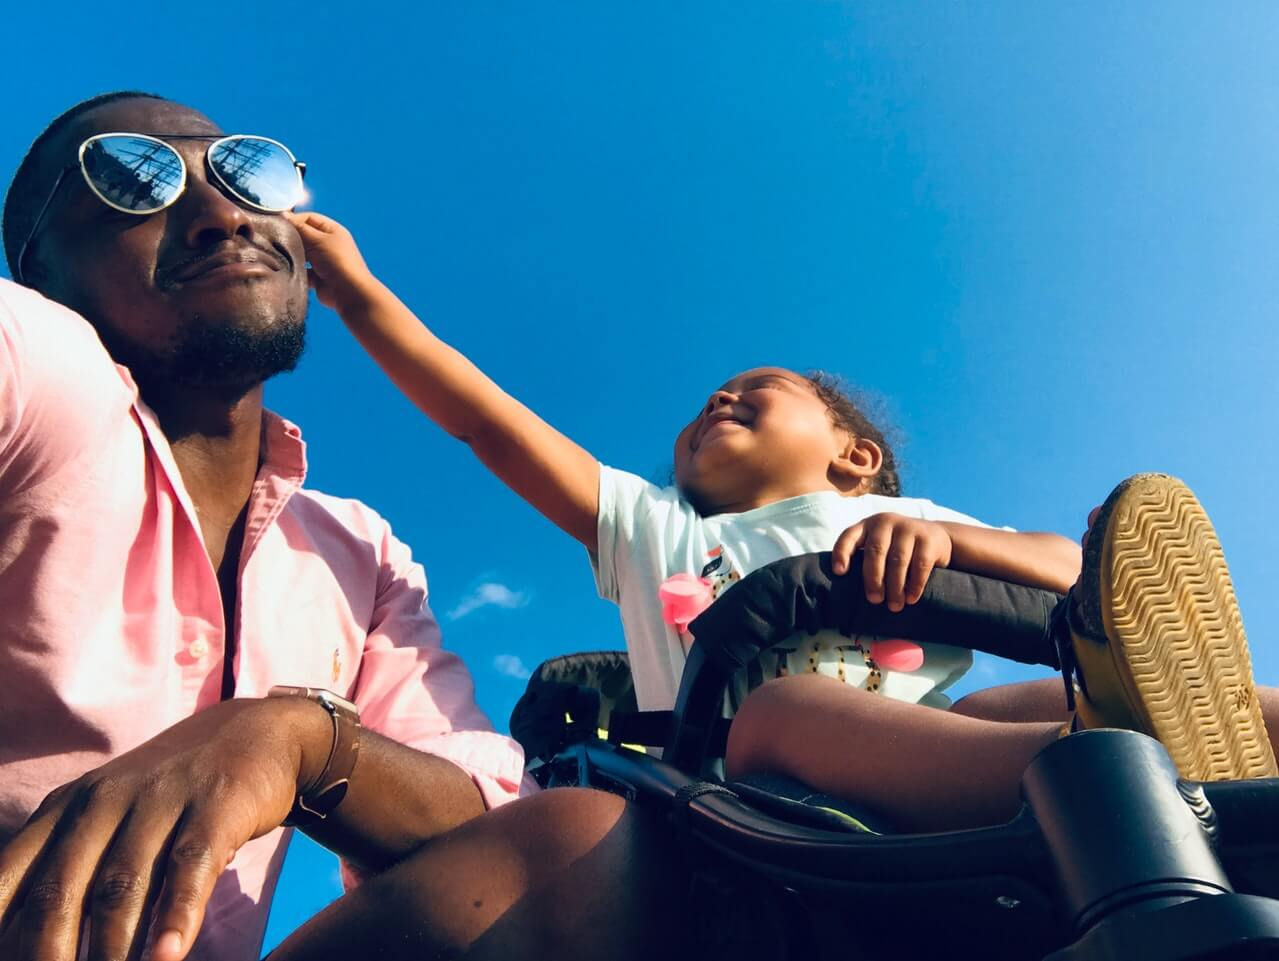 A little girl in a carseat laughs as she grabs her father's sunglasses as he pulls a funny face on Father's Day.